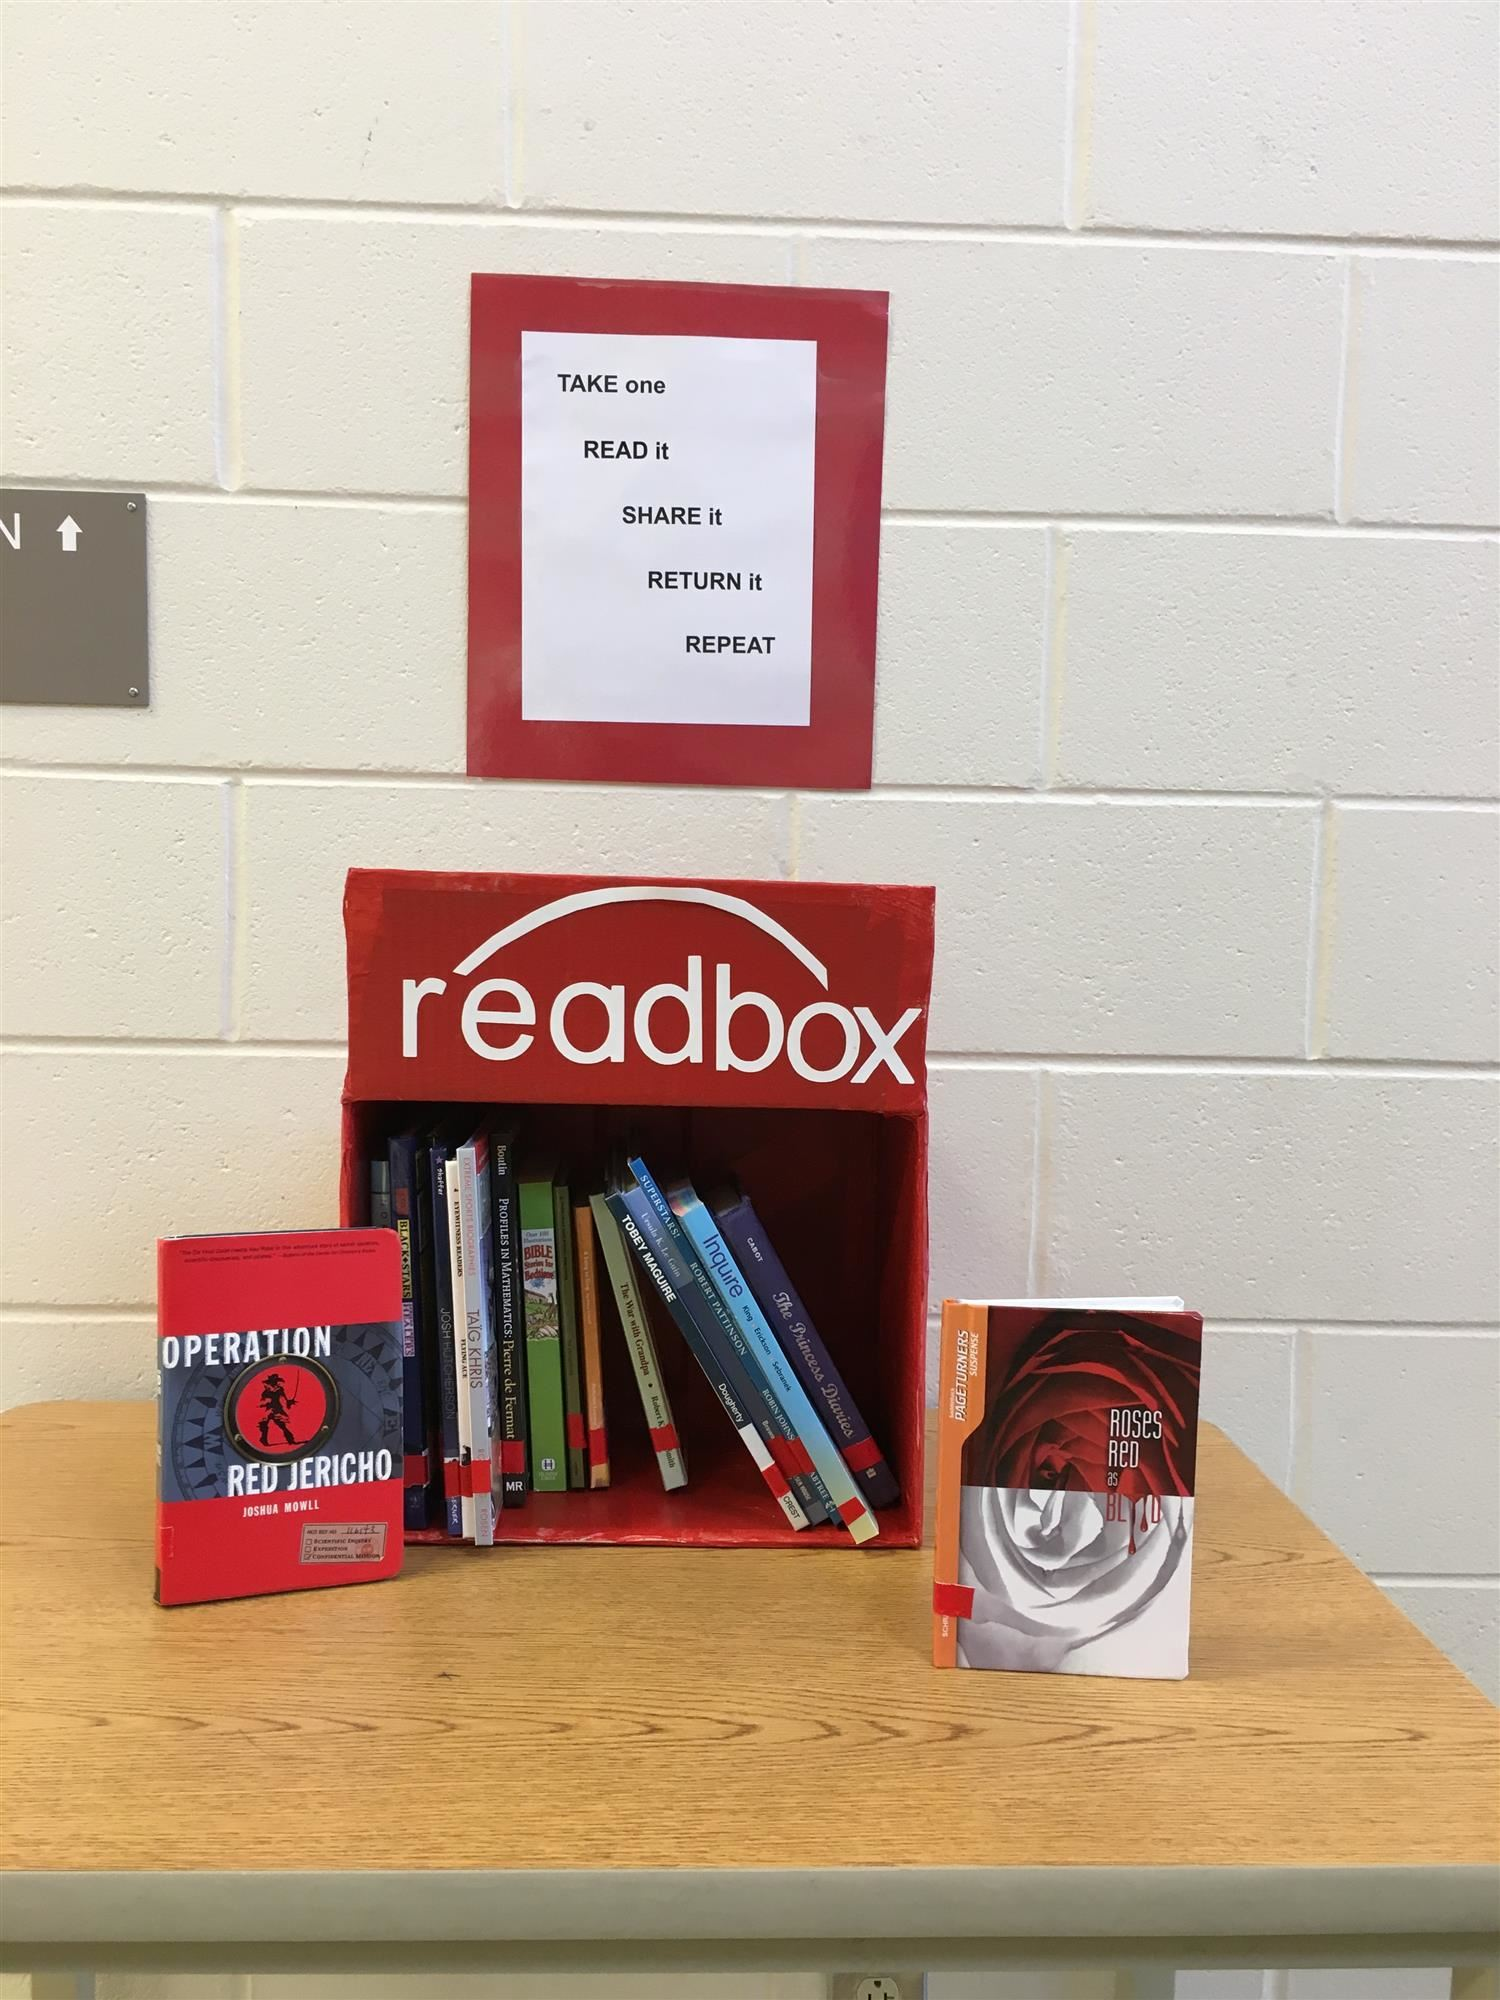 Check out the READboxes!